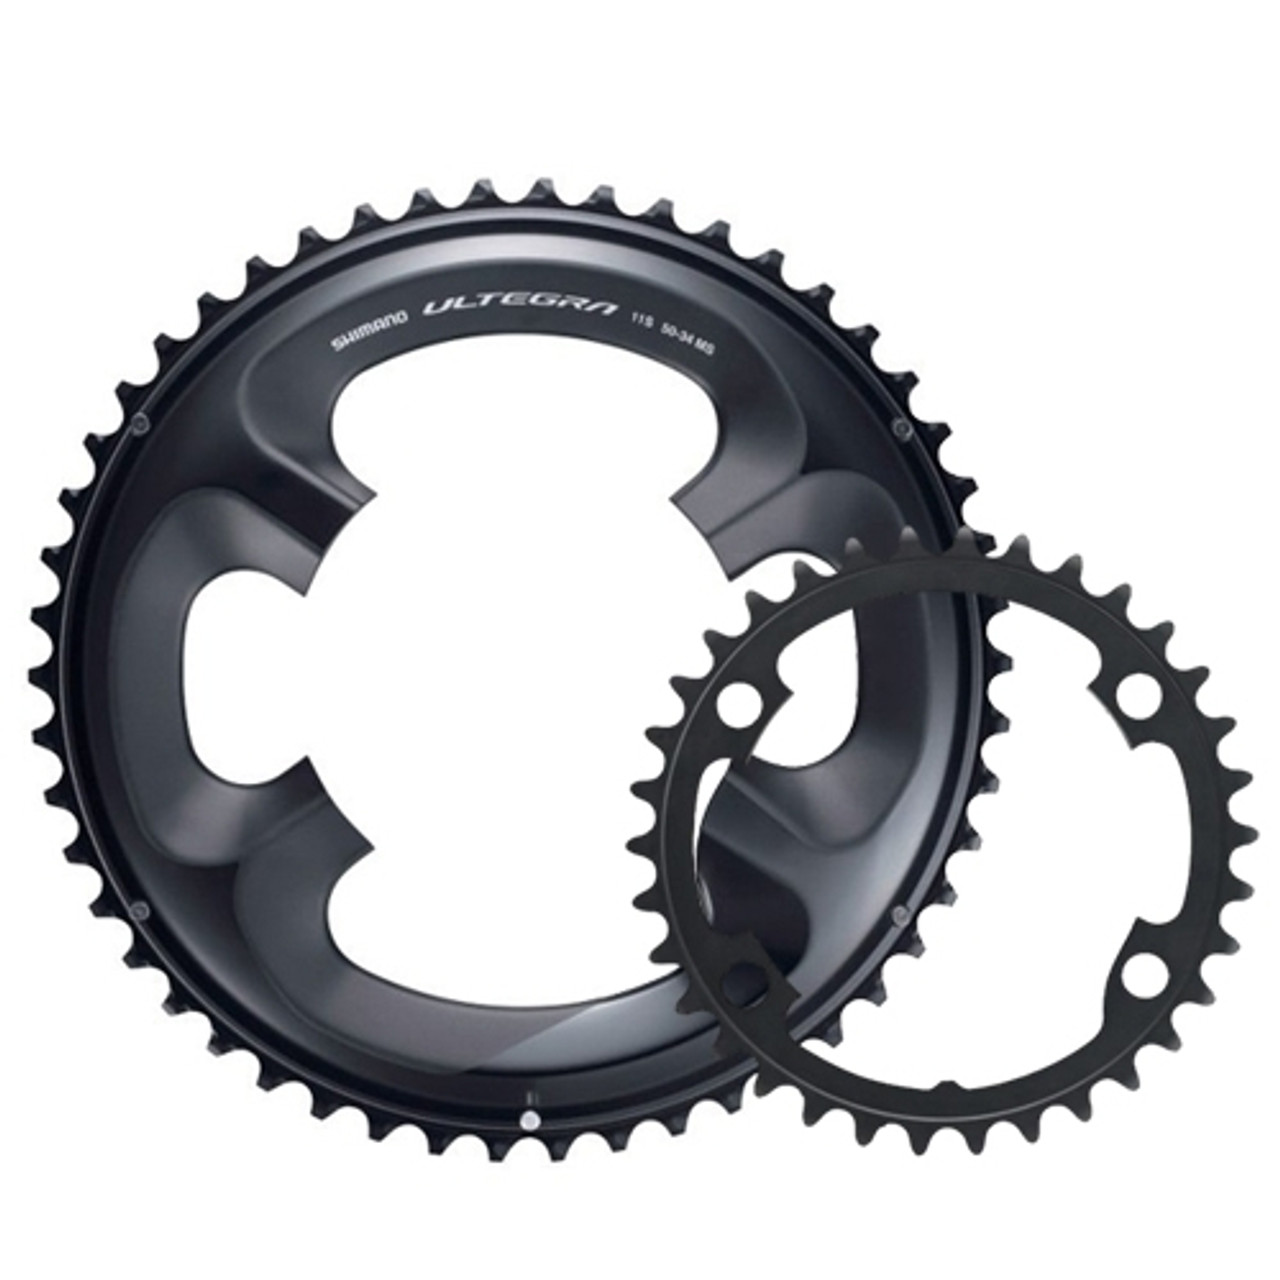 Shimano Ultegra R8000 11spd Chainring Genuine Shimano Replacement For R8000 Chainsets